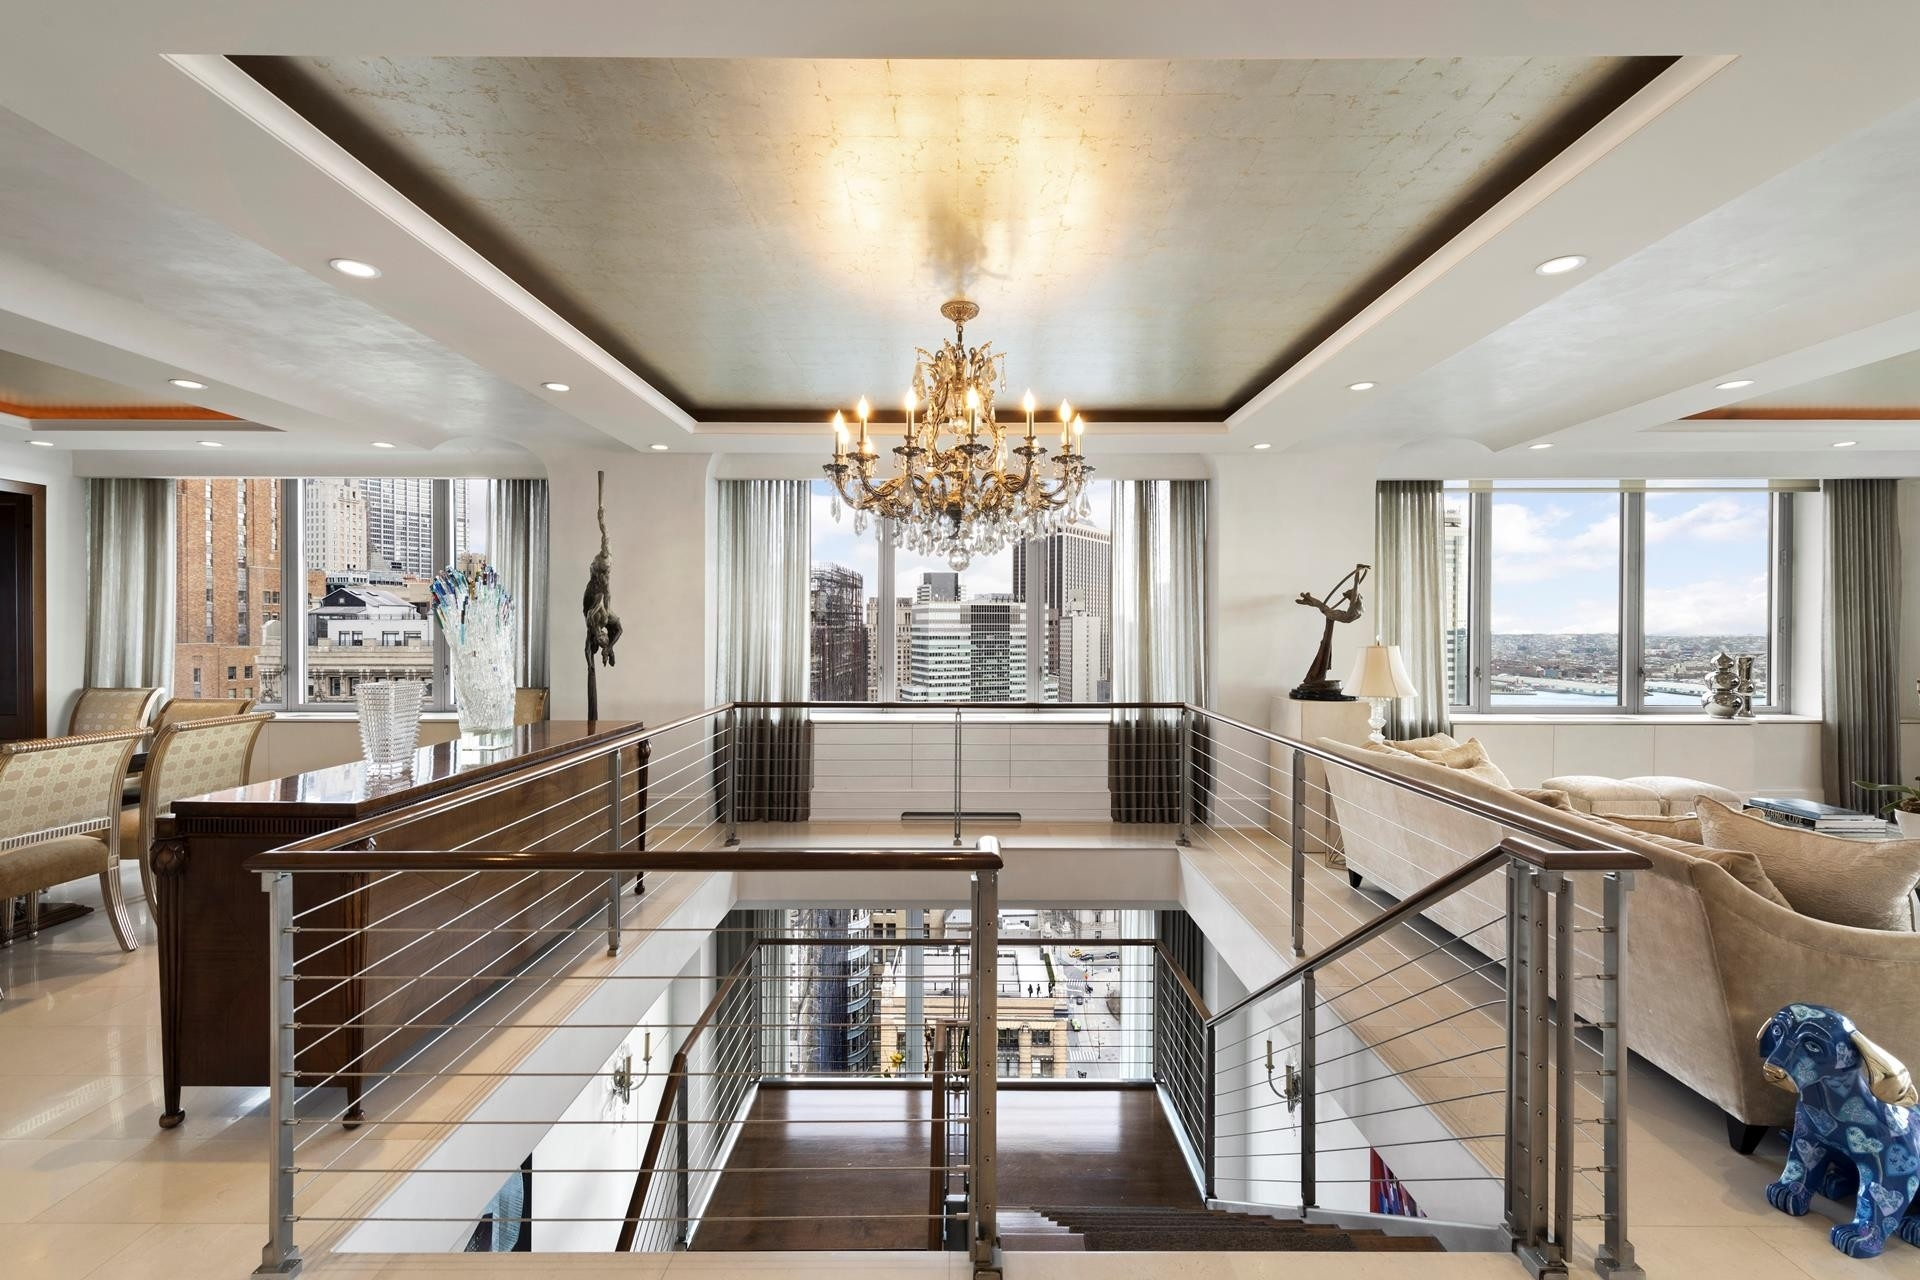 Property à The Ritz-Carlton, 10 West St, PH2/3B Financial District, New York, NY 10280